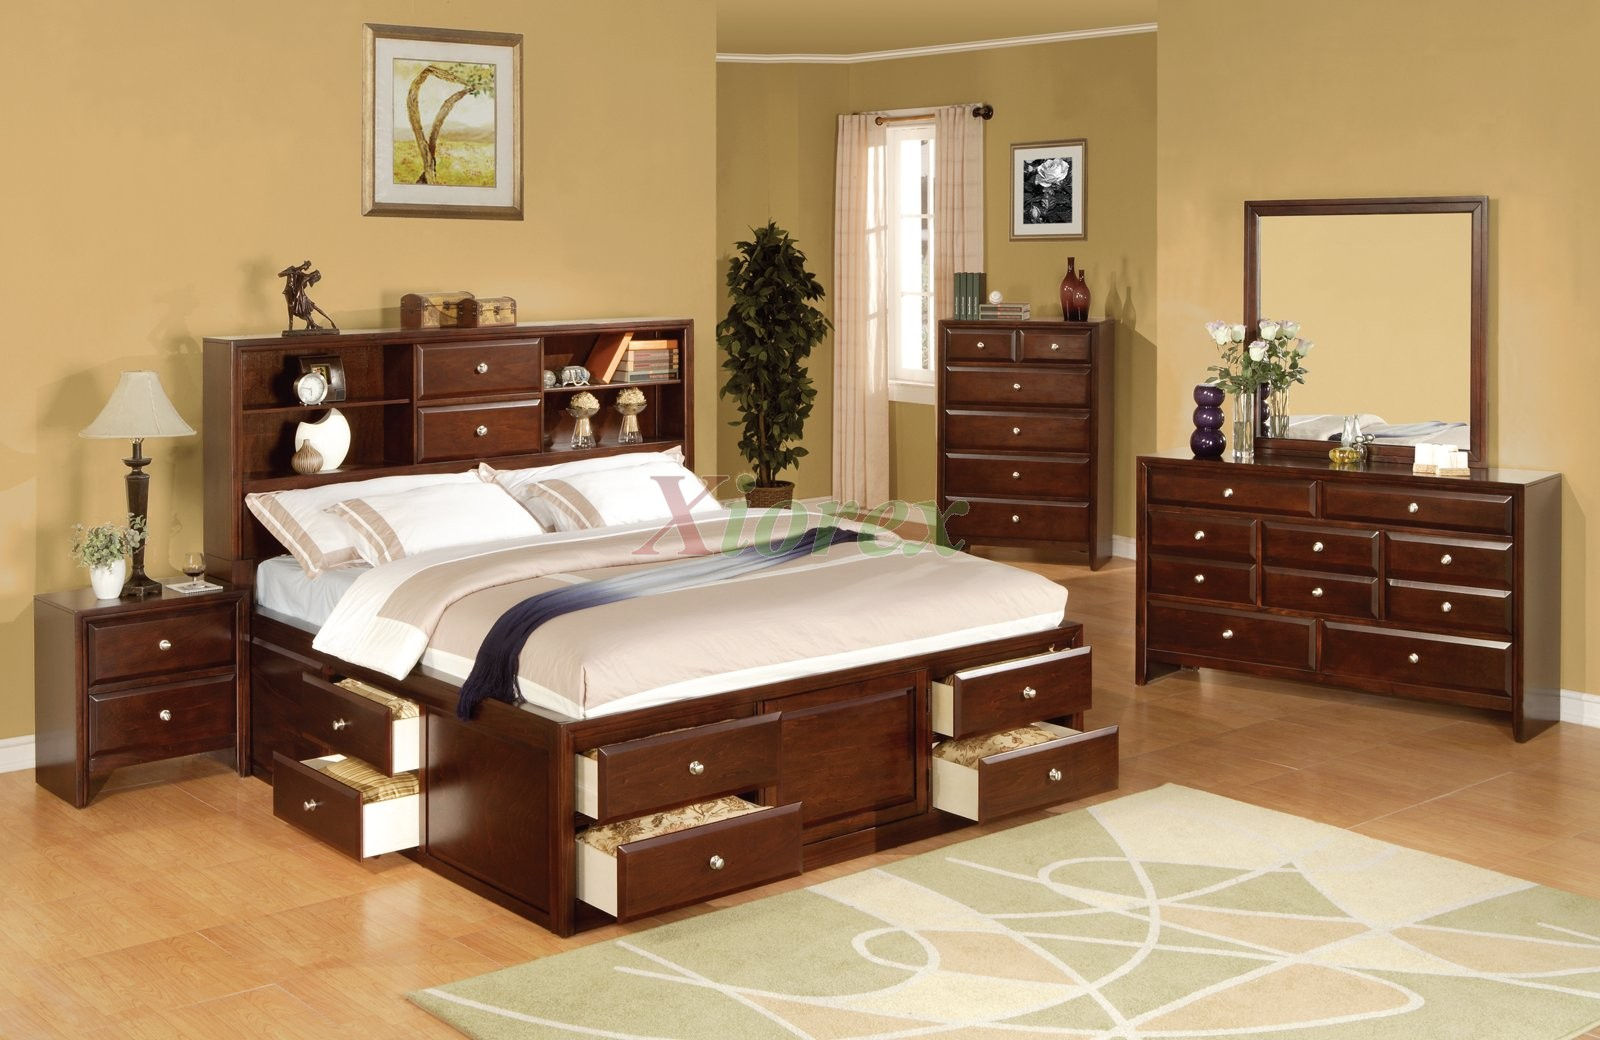 bedroom storage furniture.  Bookcase and Storage Bedroom Furniture Set 137 Xiorex